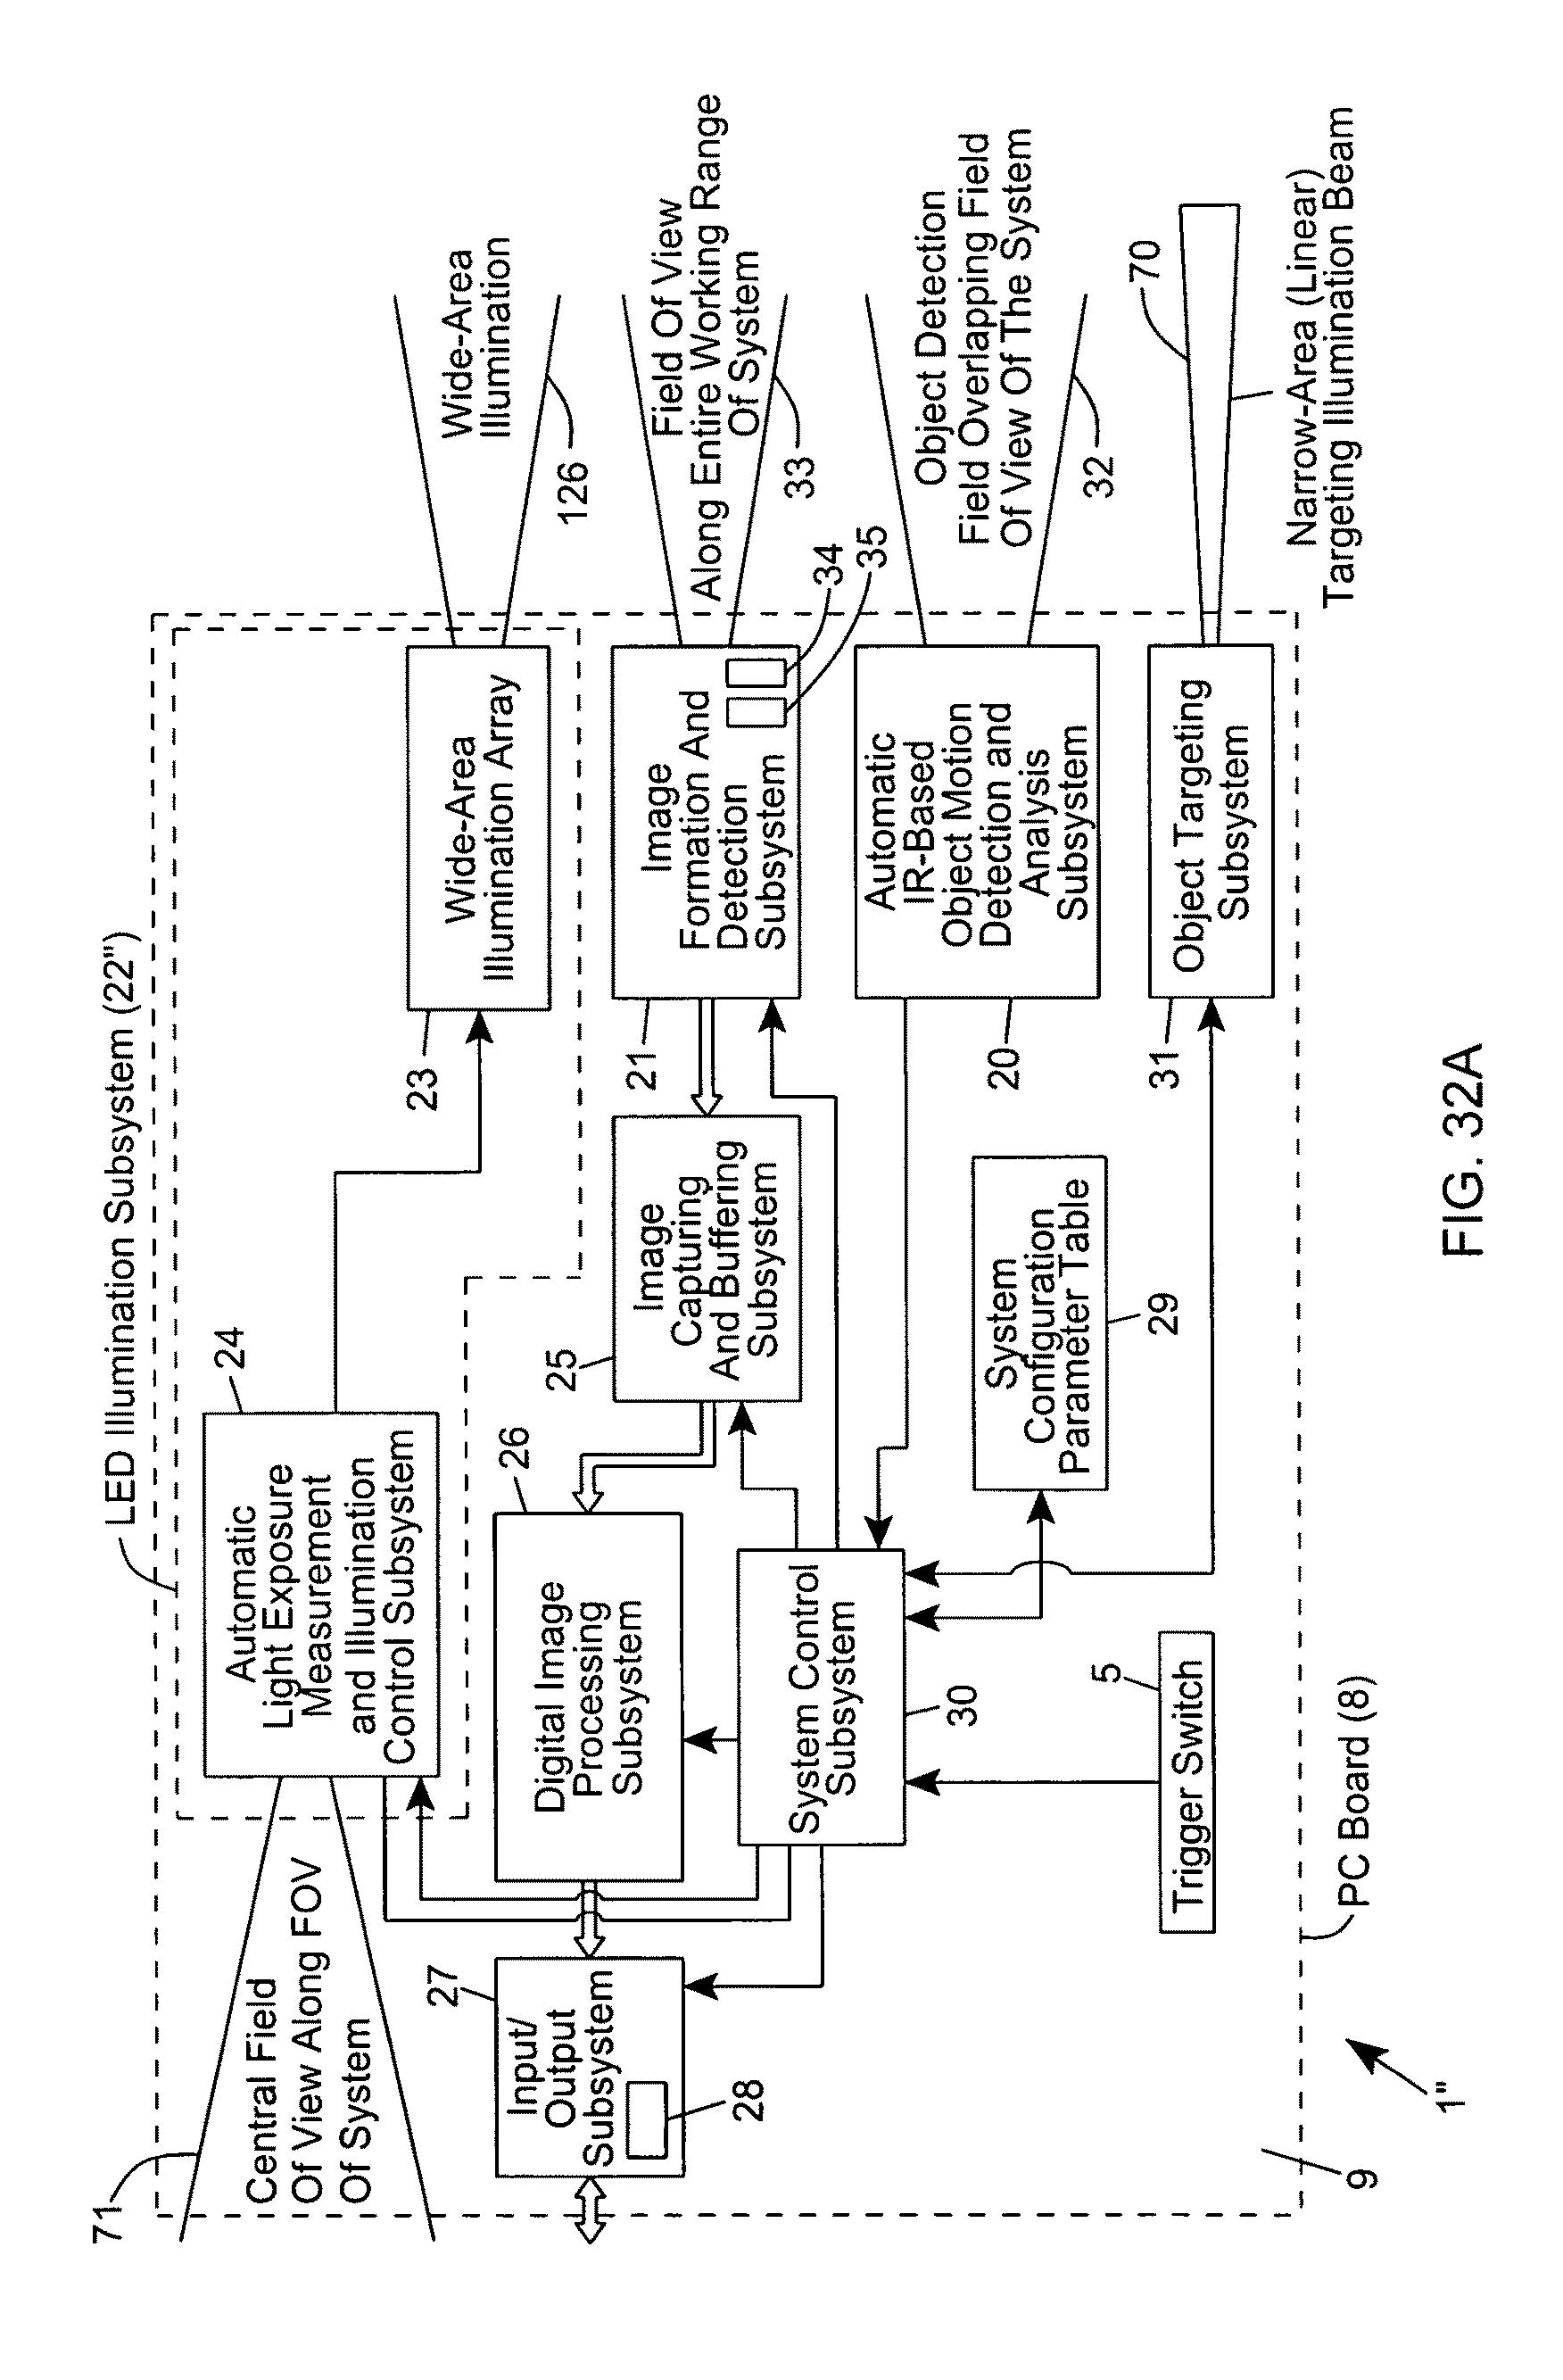 Patent Us 7967209 B2 Led Flashlight Circuit Diagram Moreover Diagrams On Images